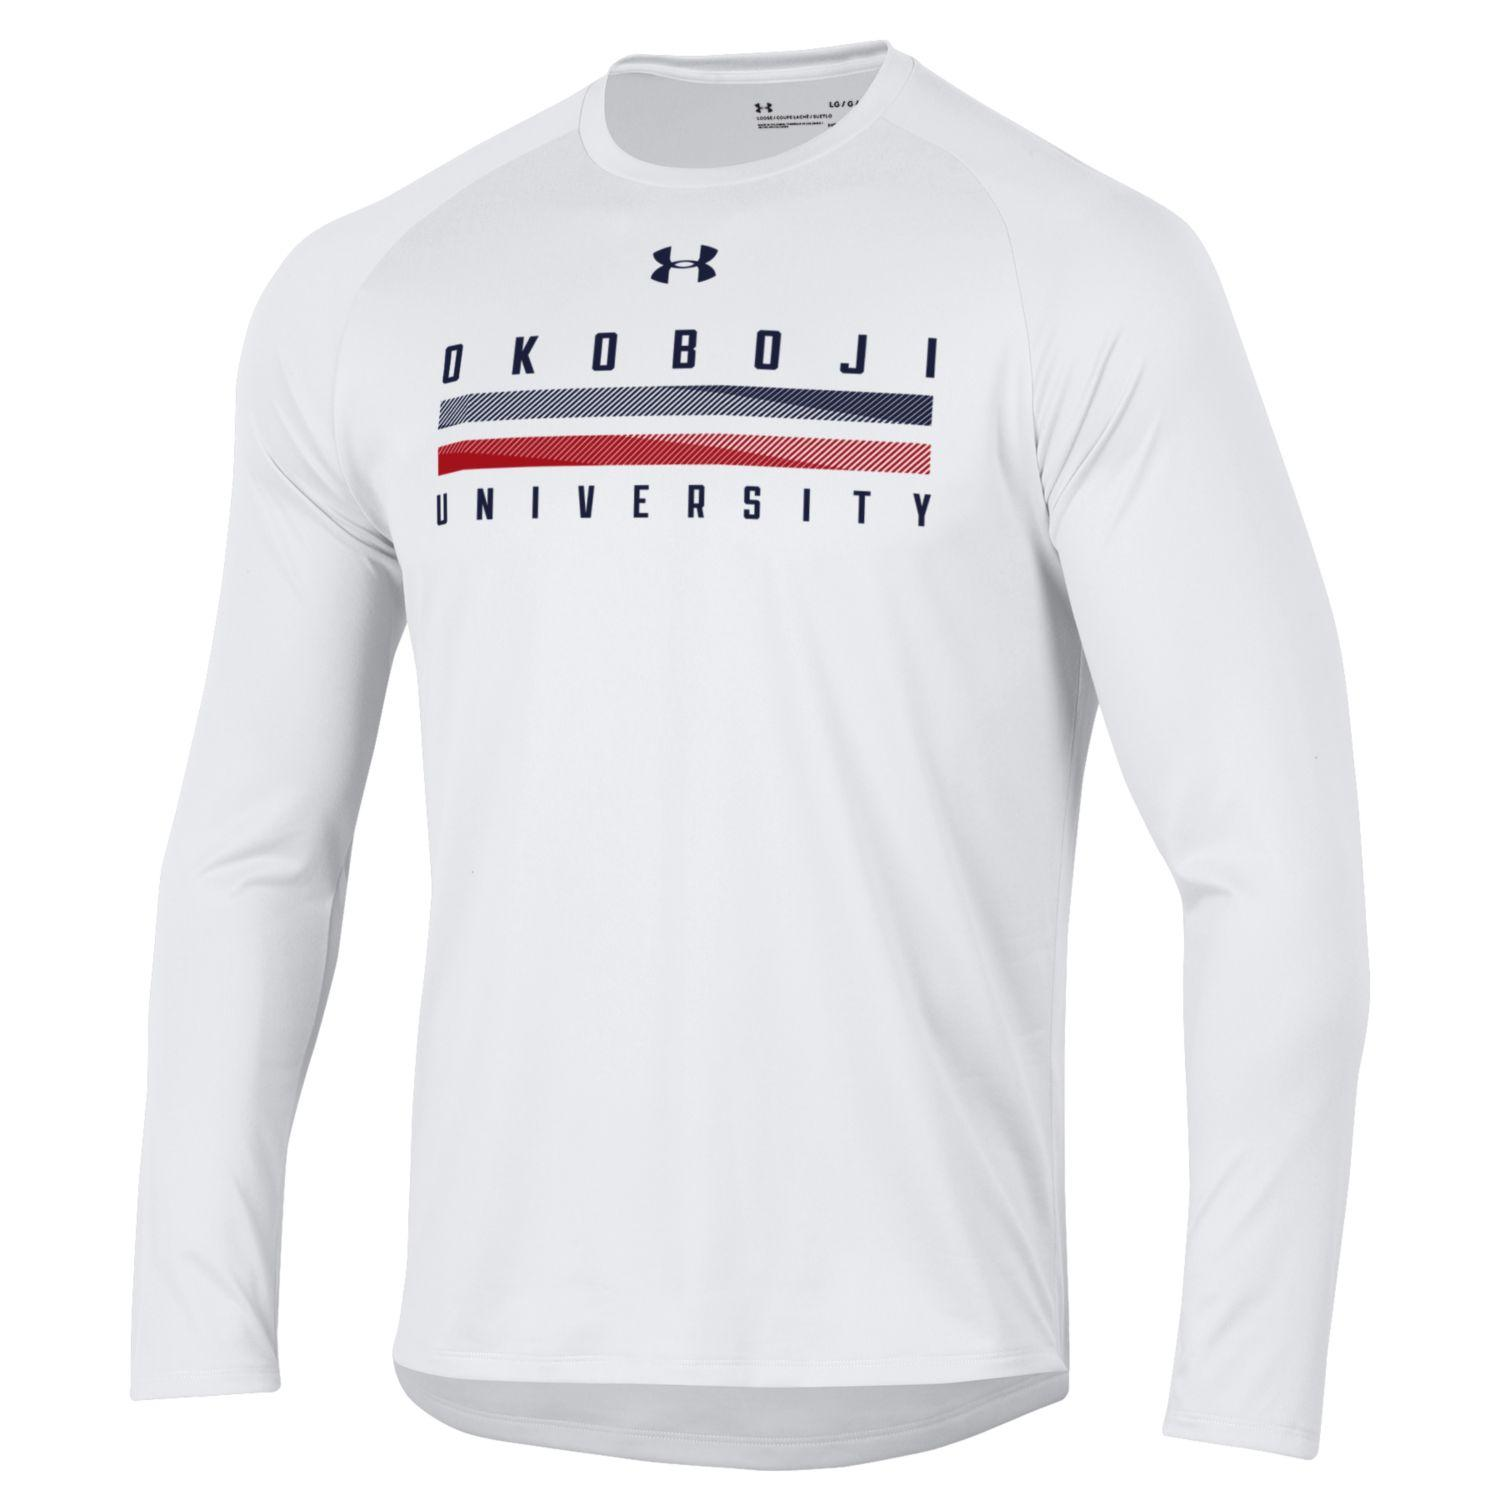 Okoboji University Tech Long Sleeve Tee - White